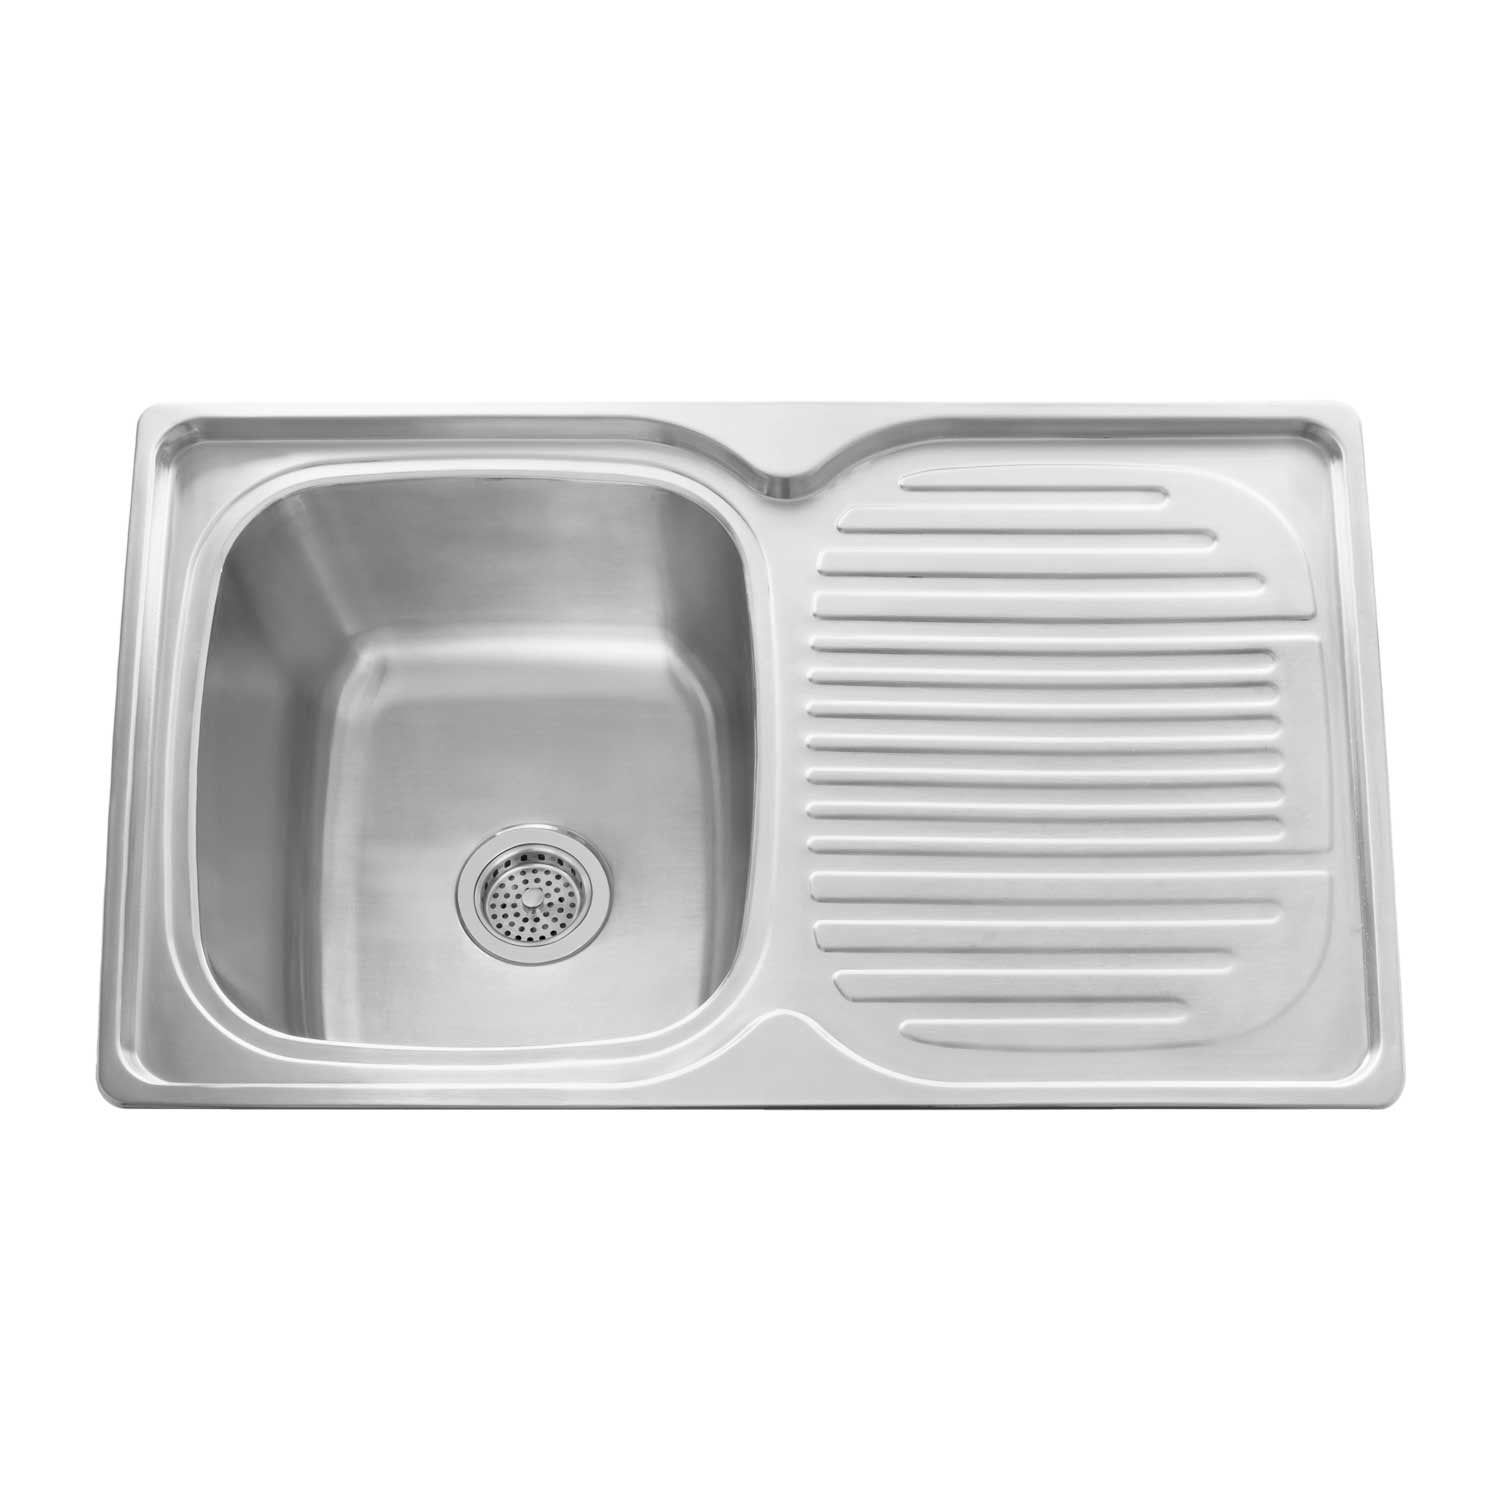 32 Infinite Rectangular Drop In Stainless Steel Prep Sink With Drainboard Bar And Prep Sinks Kitche Drainboard Sink Prep Sink Stainless Steel Kitchen Sink Drop in sink with drainboard